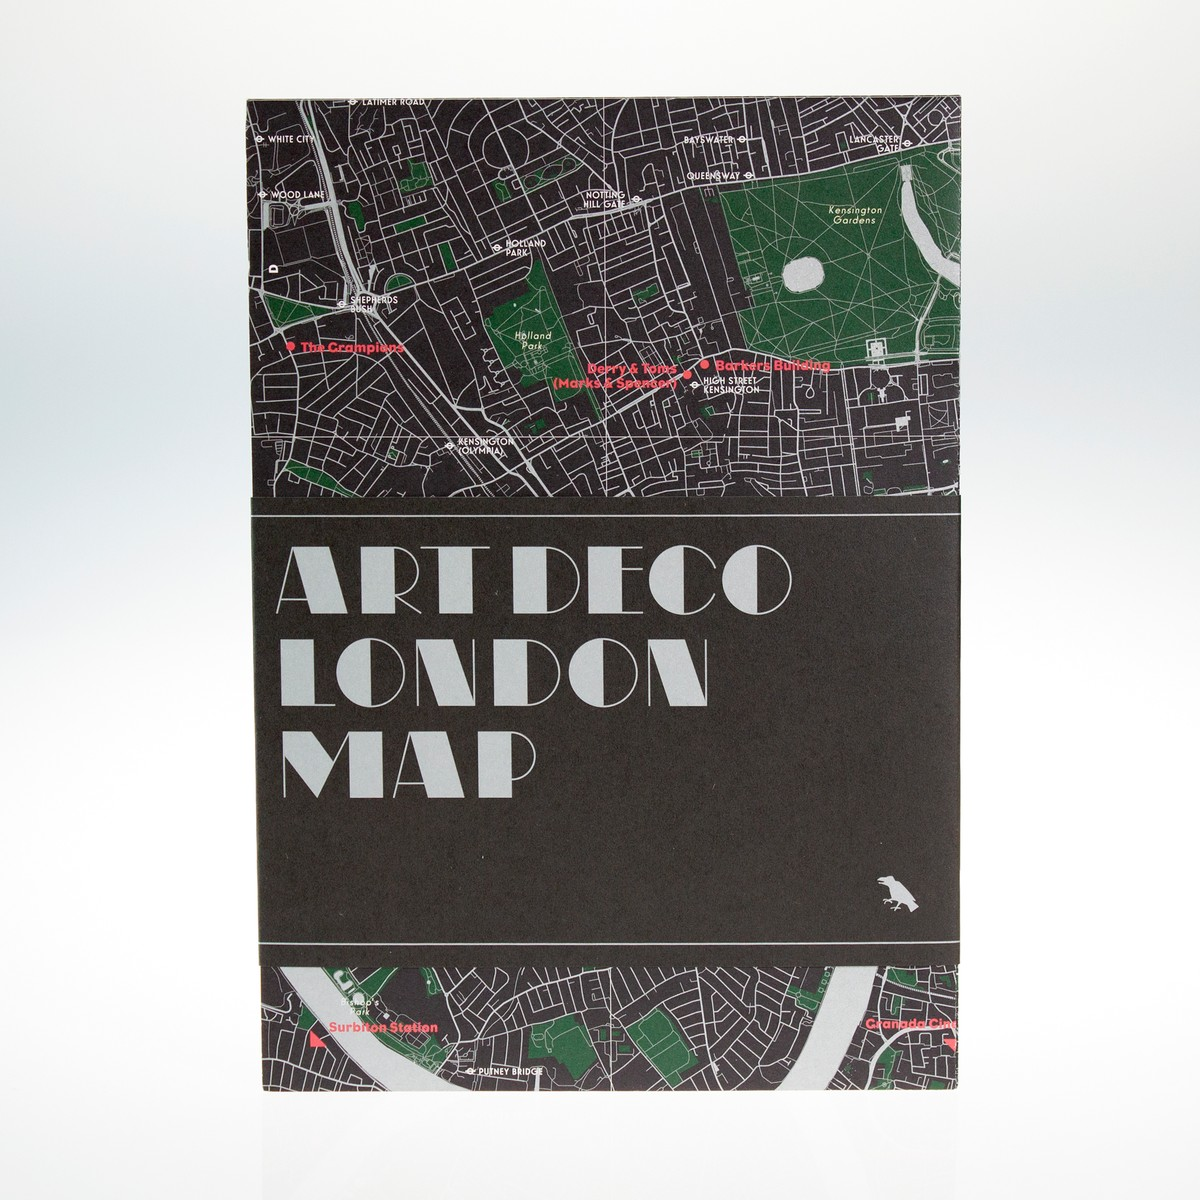 Photo of Art Deco London Map